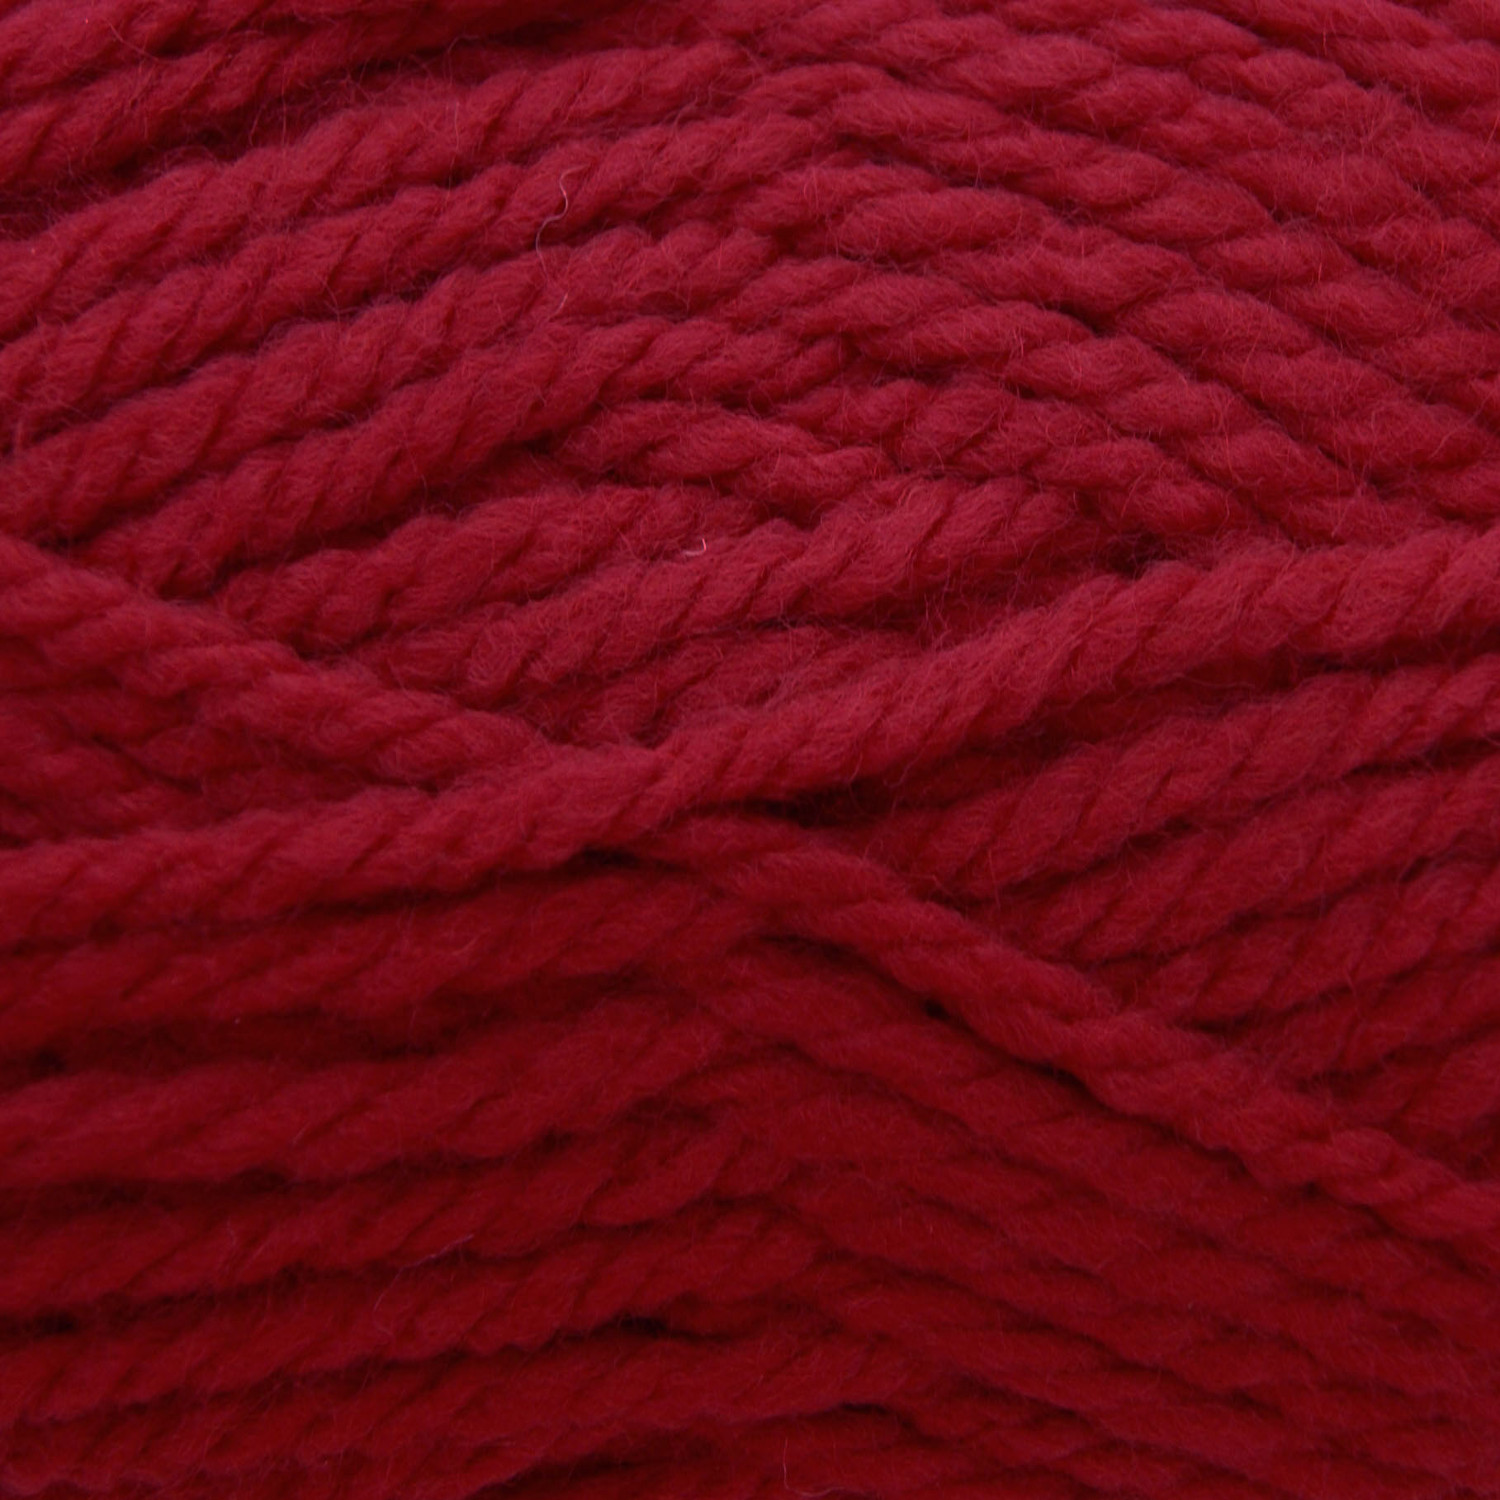 Knitting Wool : ... Comfort Chunky Knitting Wool King Cole Acrylic & Nylon Super Soft Yarn